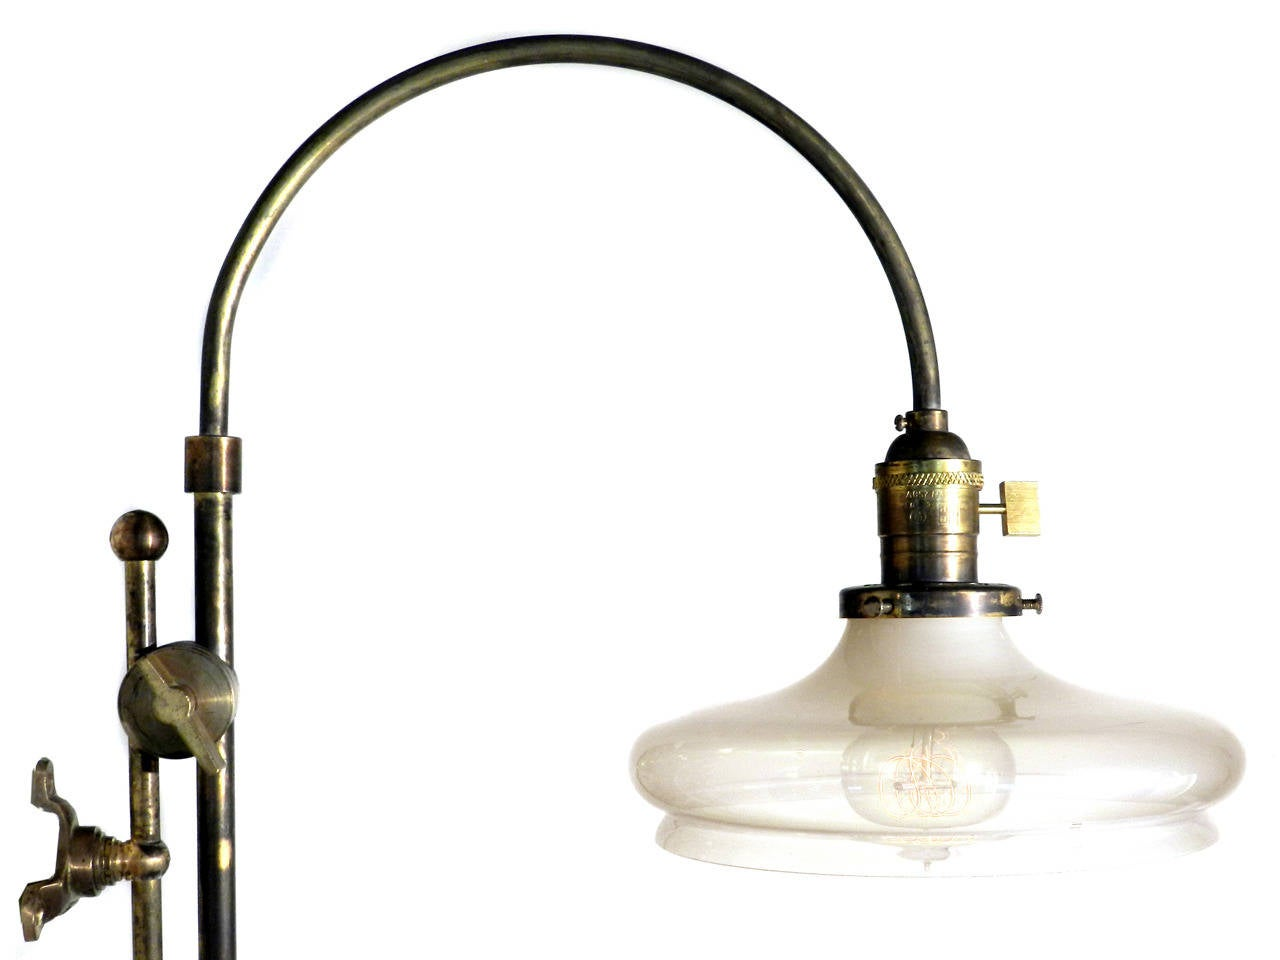 Adjustable Arched Wall-Mounted Lamp For Sale at 1stdibs